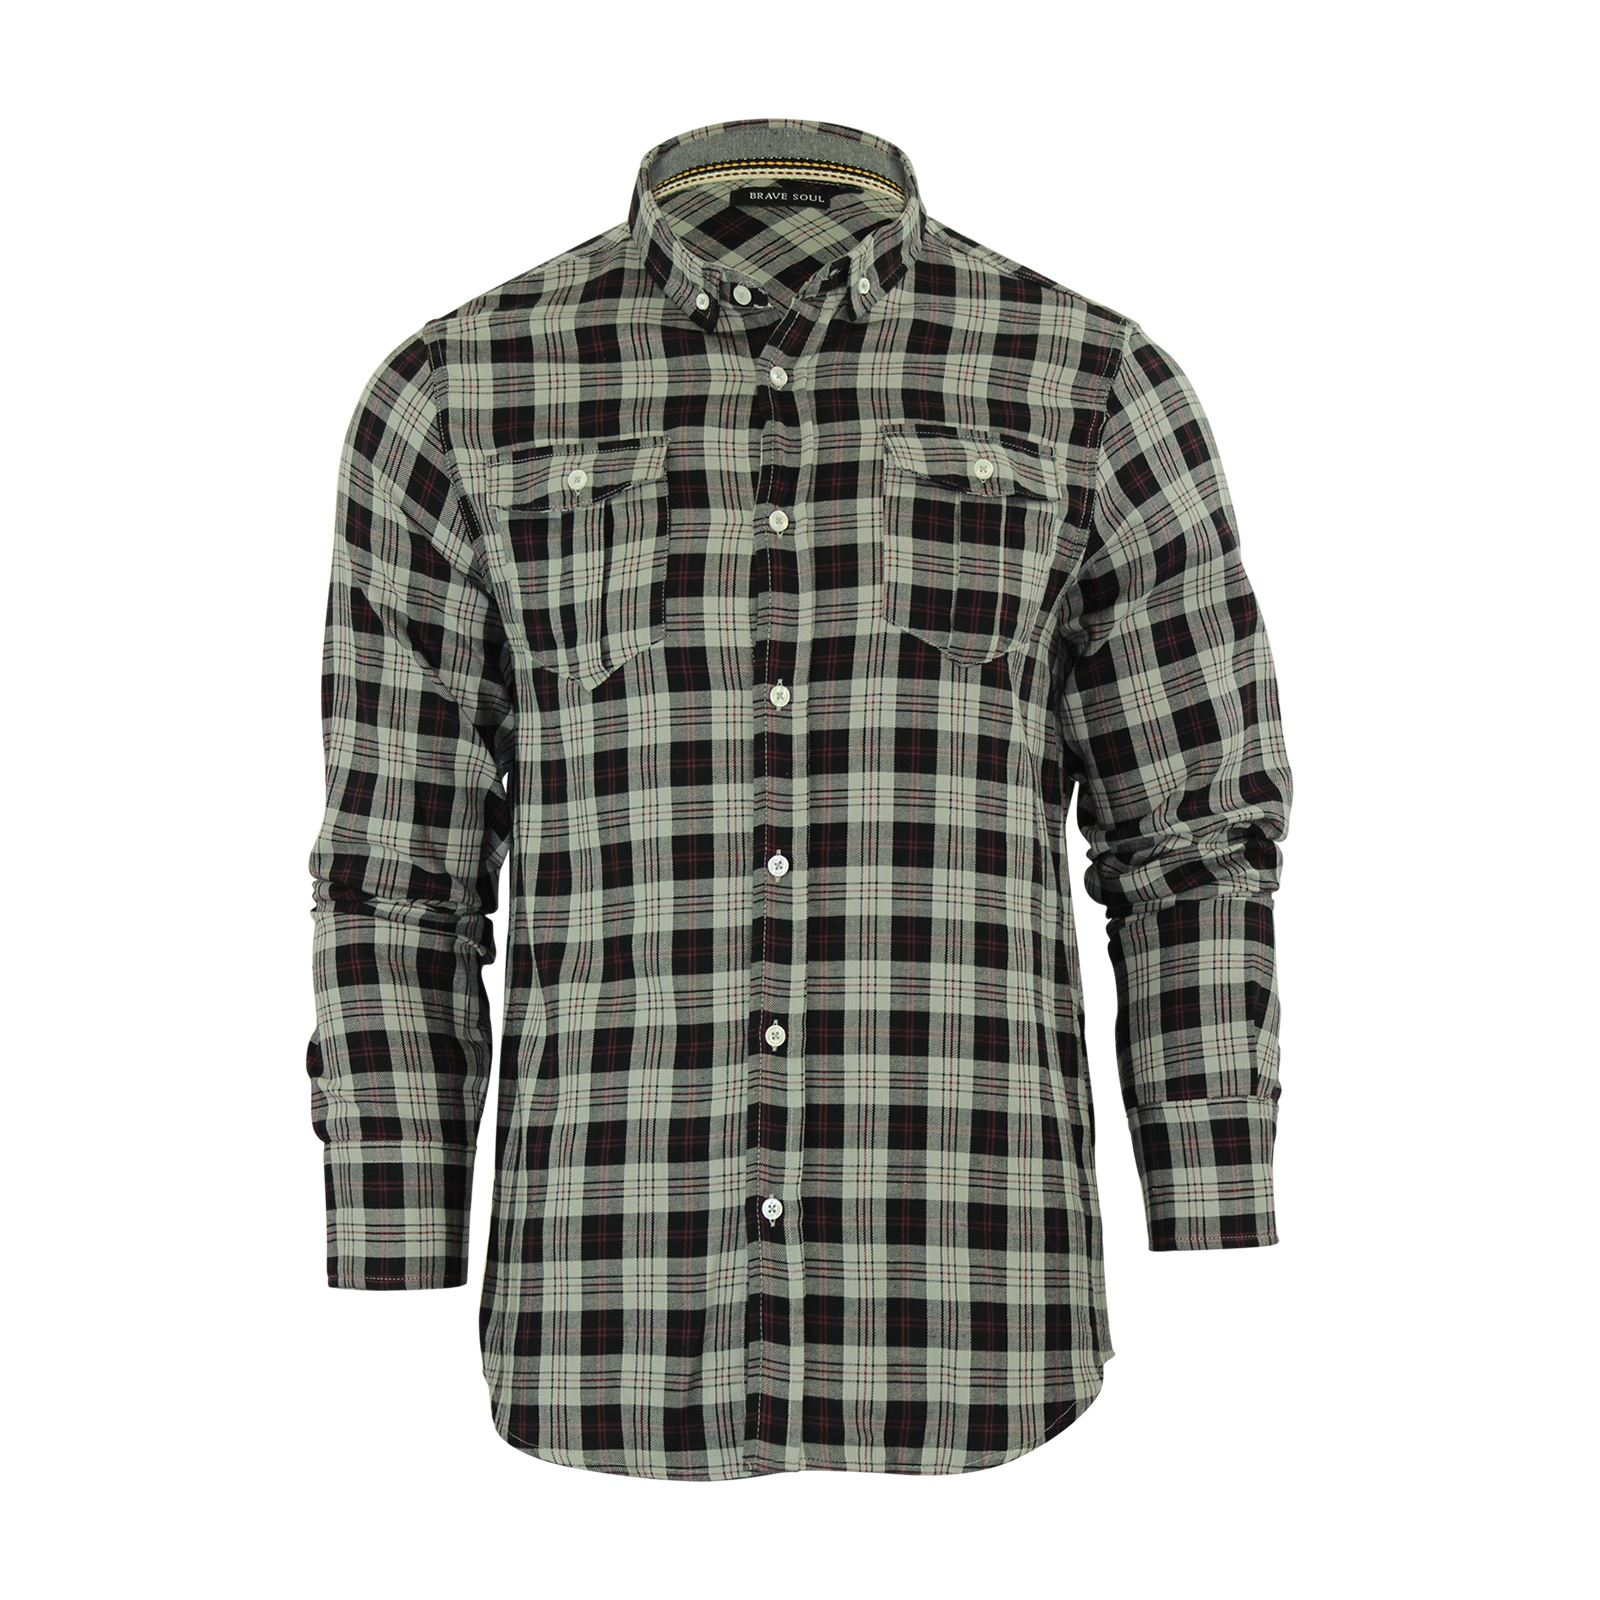 Brave-Soul-Mens-Check-Shirt-Flannel-Brushed-Cotton-Long-Sleeve-Casual-Top thumbnail 14